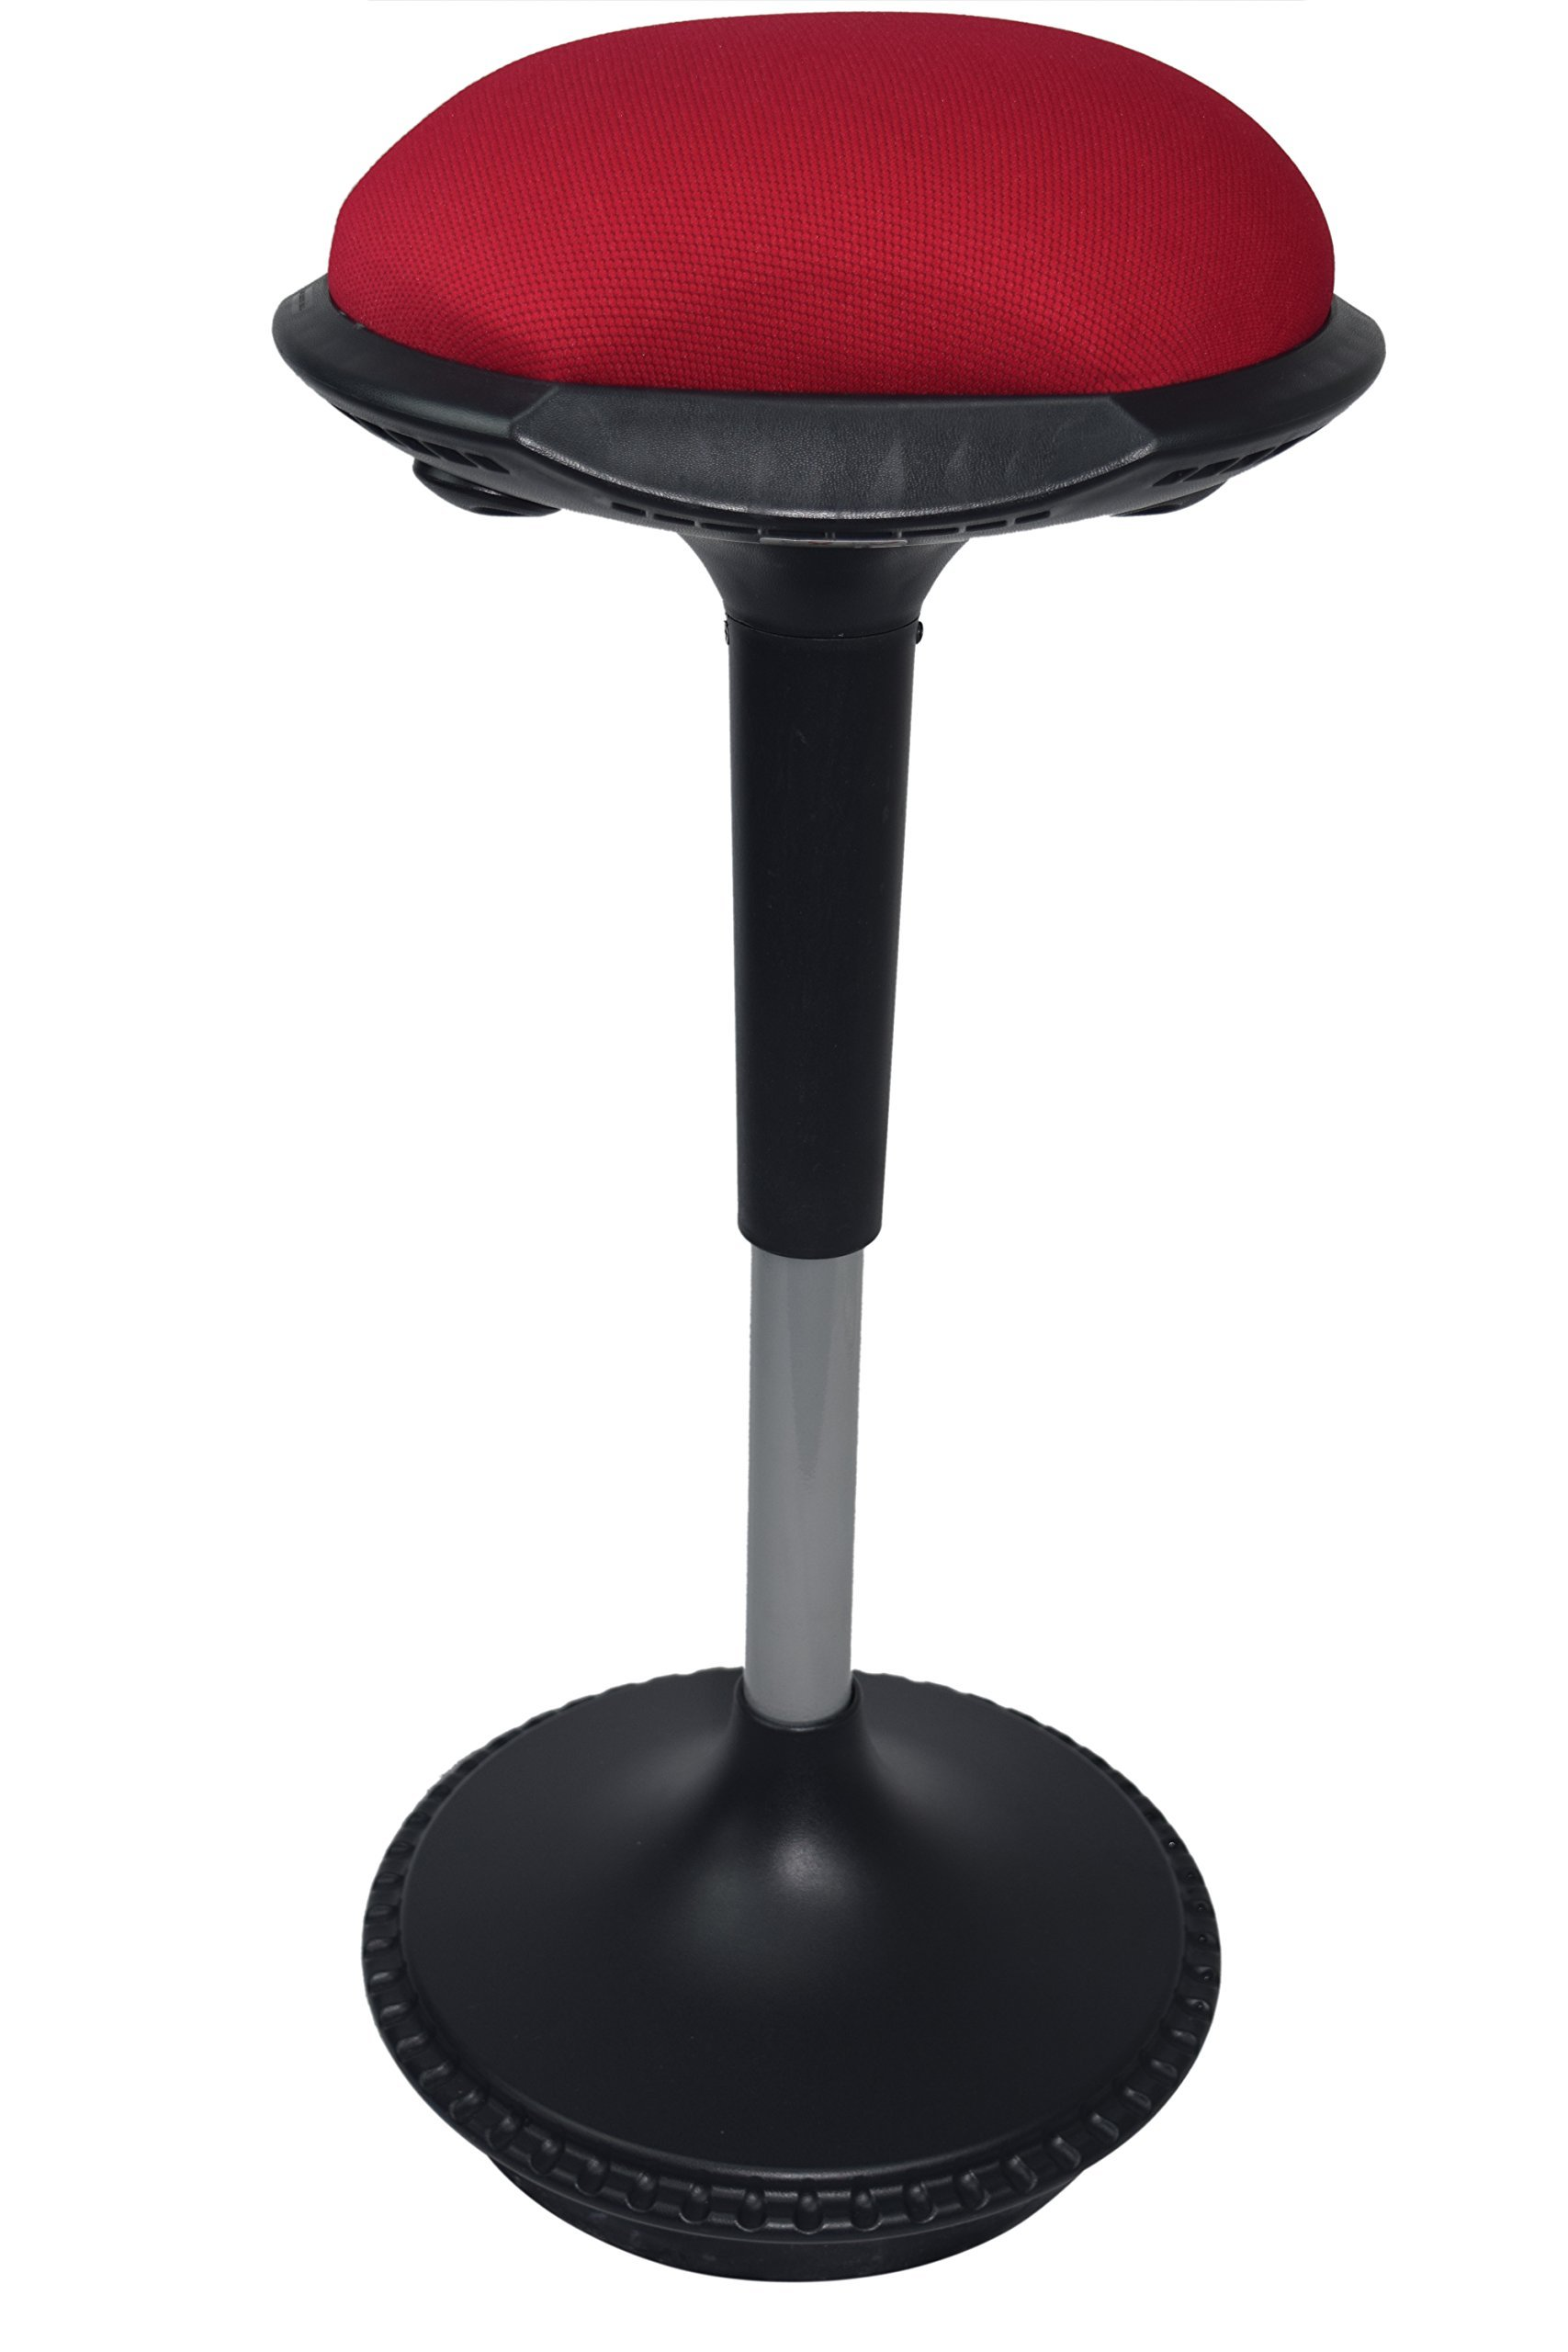 Incredible Wobble Stool Adjustable Height Active Sitting Balance Chair For Office Stand Up Desk Best Tall Swivel Ergonomic Stability Perch Standing Desk Fabric Download Free Architecture Designs Grimeyleaguecom